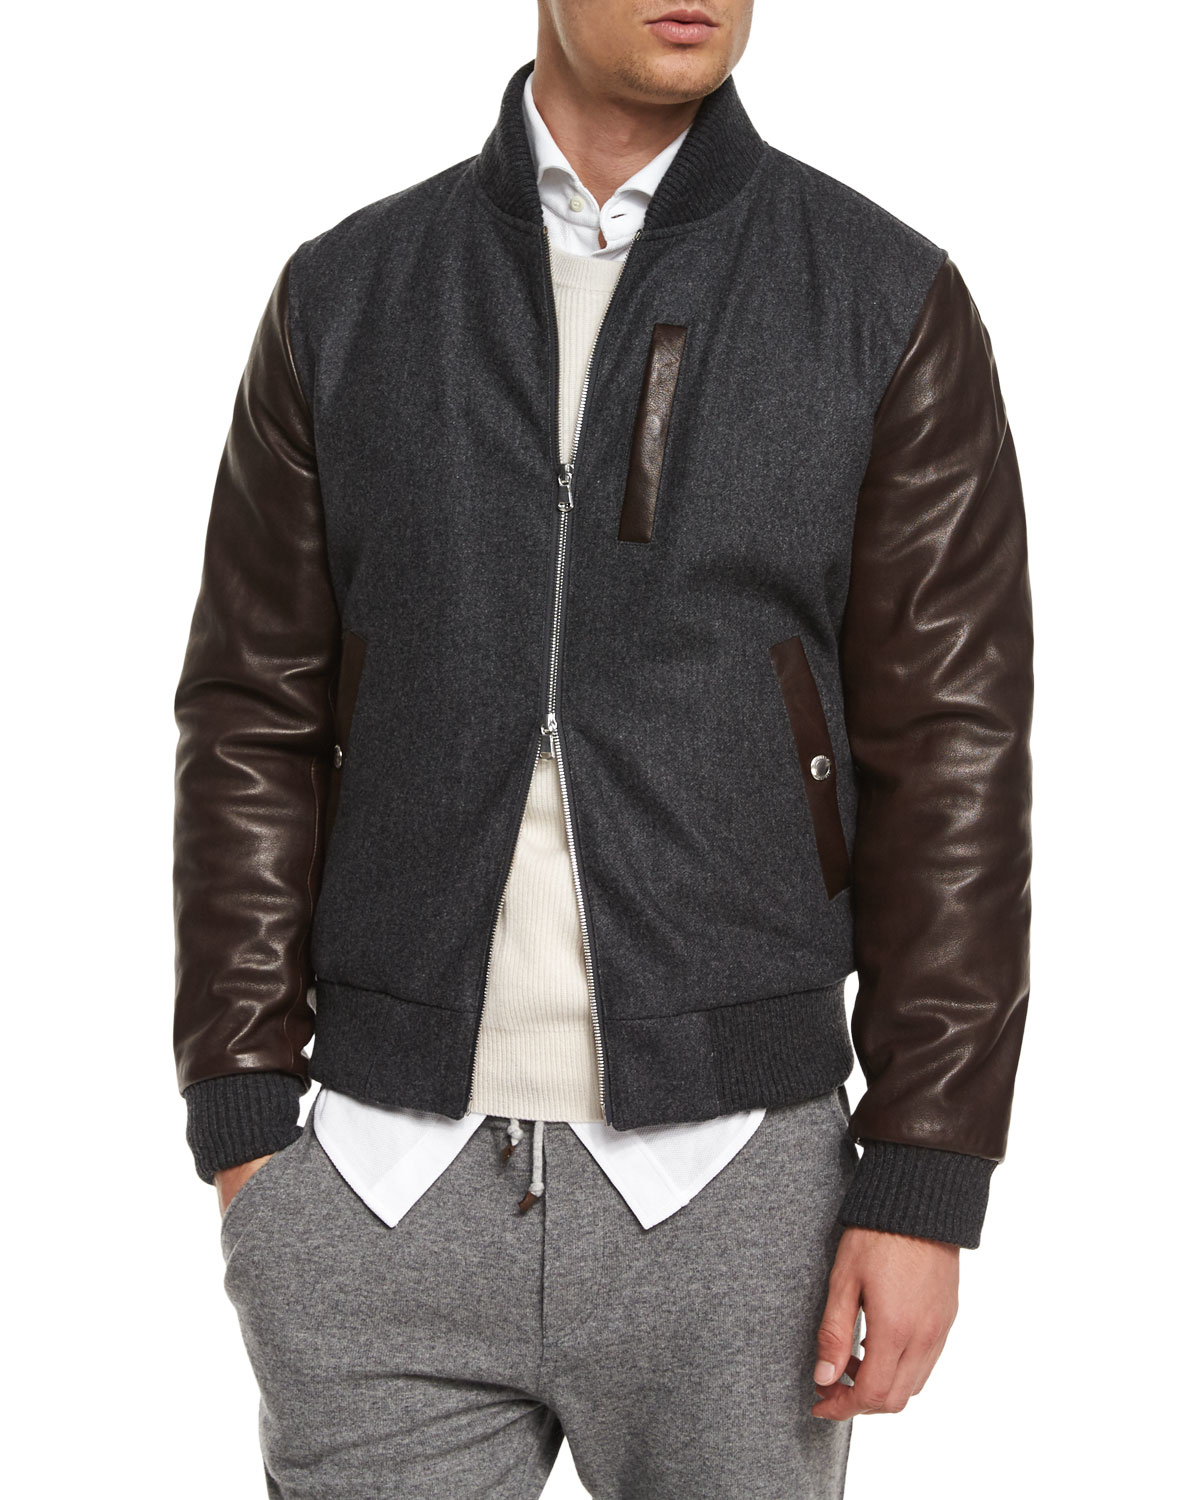 At The Sales Brunello Cucinelli Mixed Media Wool Blend